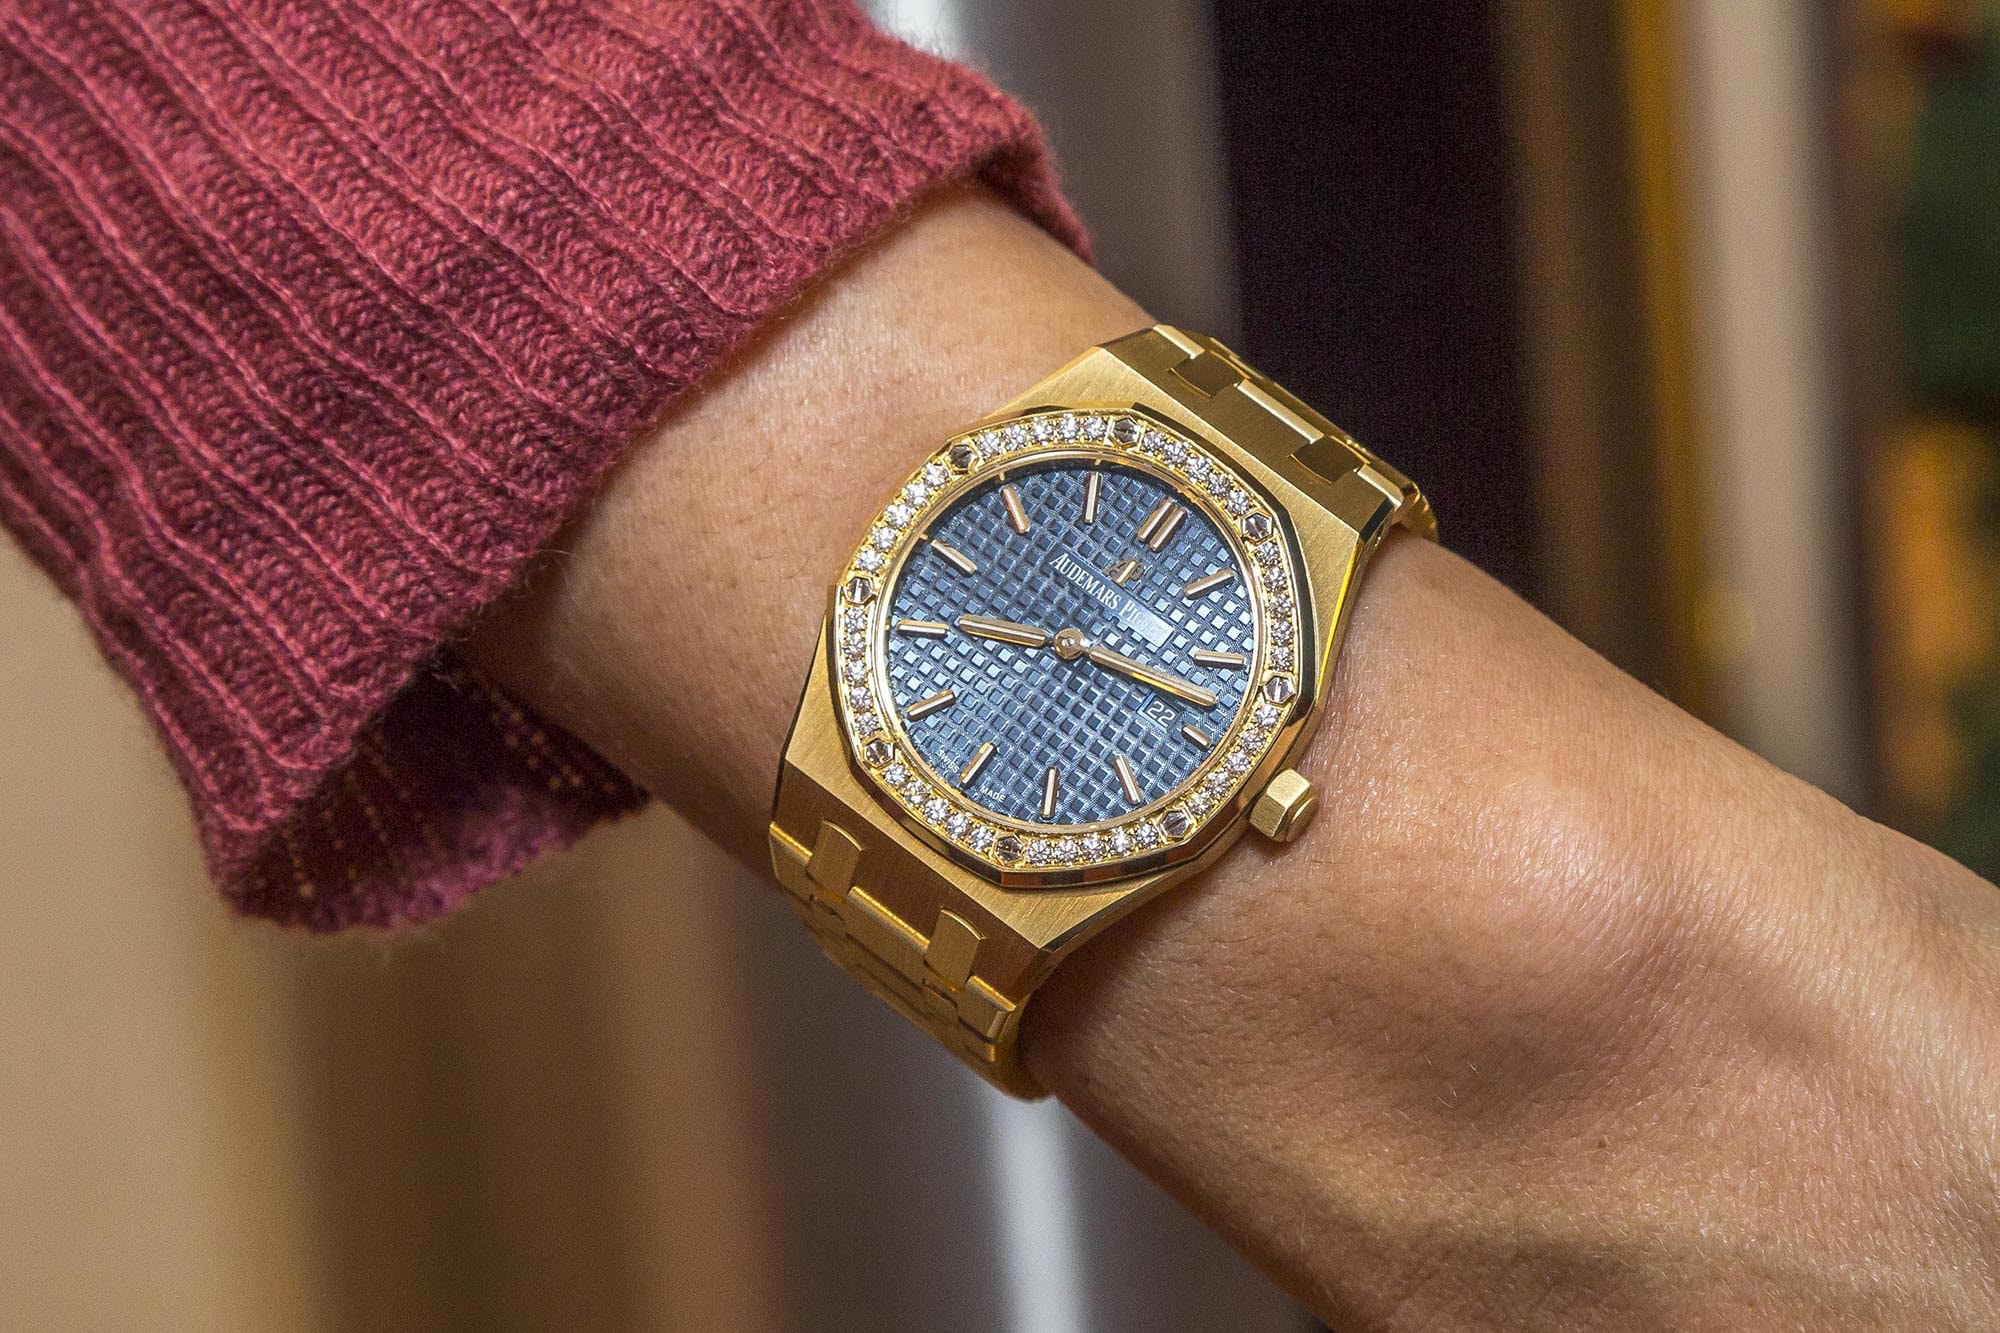 Photo Report: HODINKEE Hosts A Collector Get-Together At The Wempe Boutique In London Photo Report: HODINKEE Hosts A Collector Get-Together At The Wempe Boutique In London 333333333